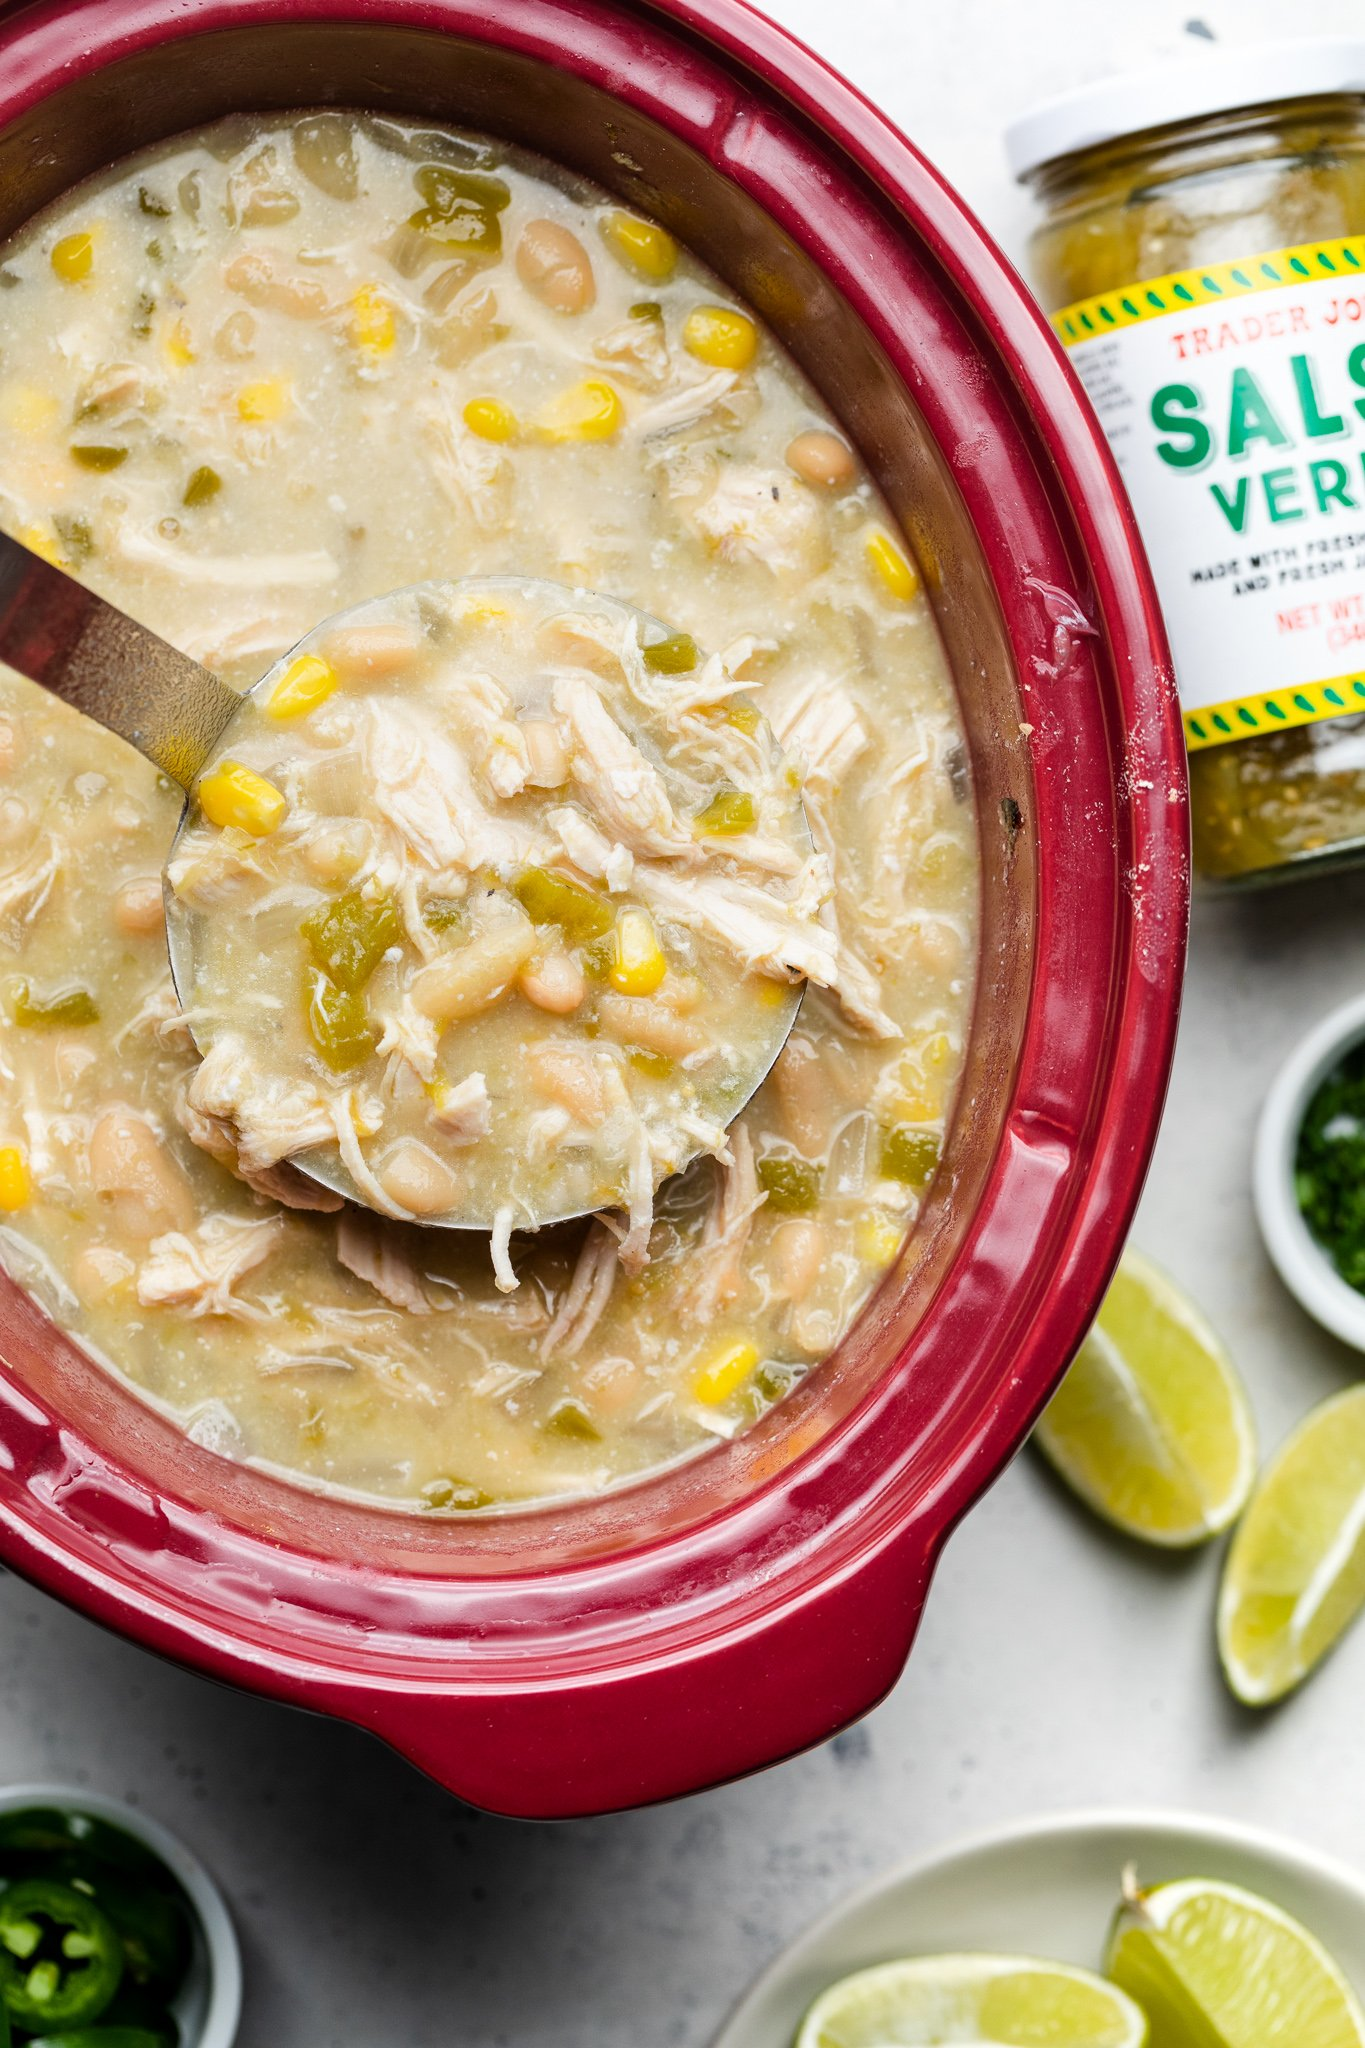 Slow Cooker Salsa Verde Chicken Chili on a red casserole